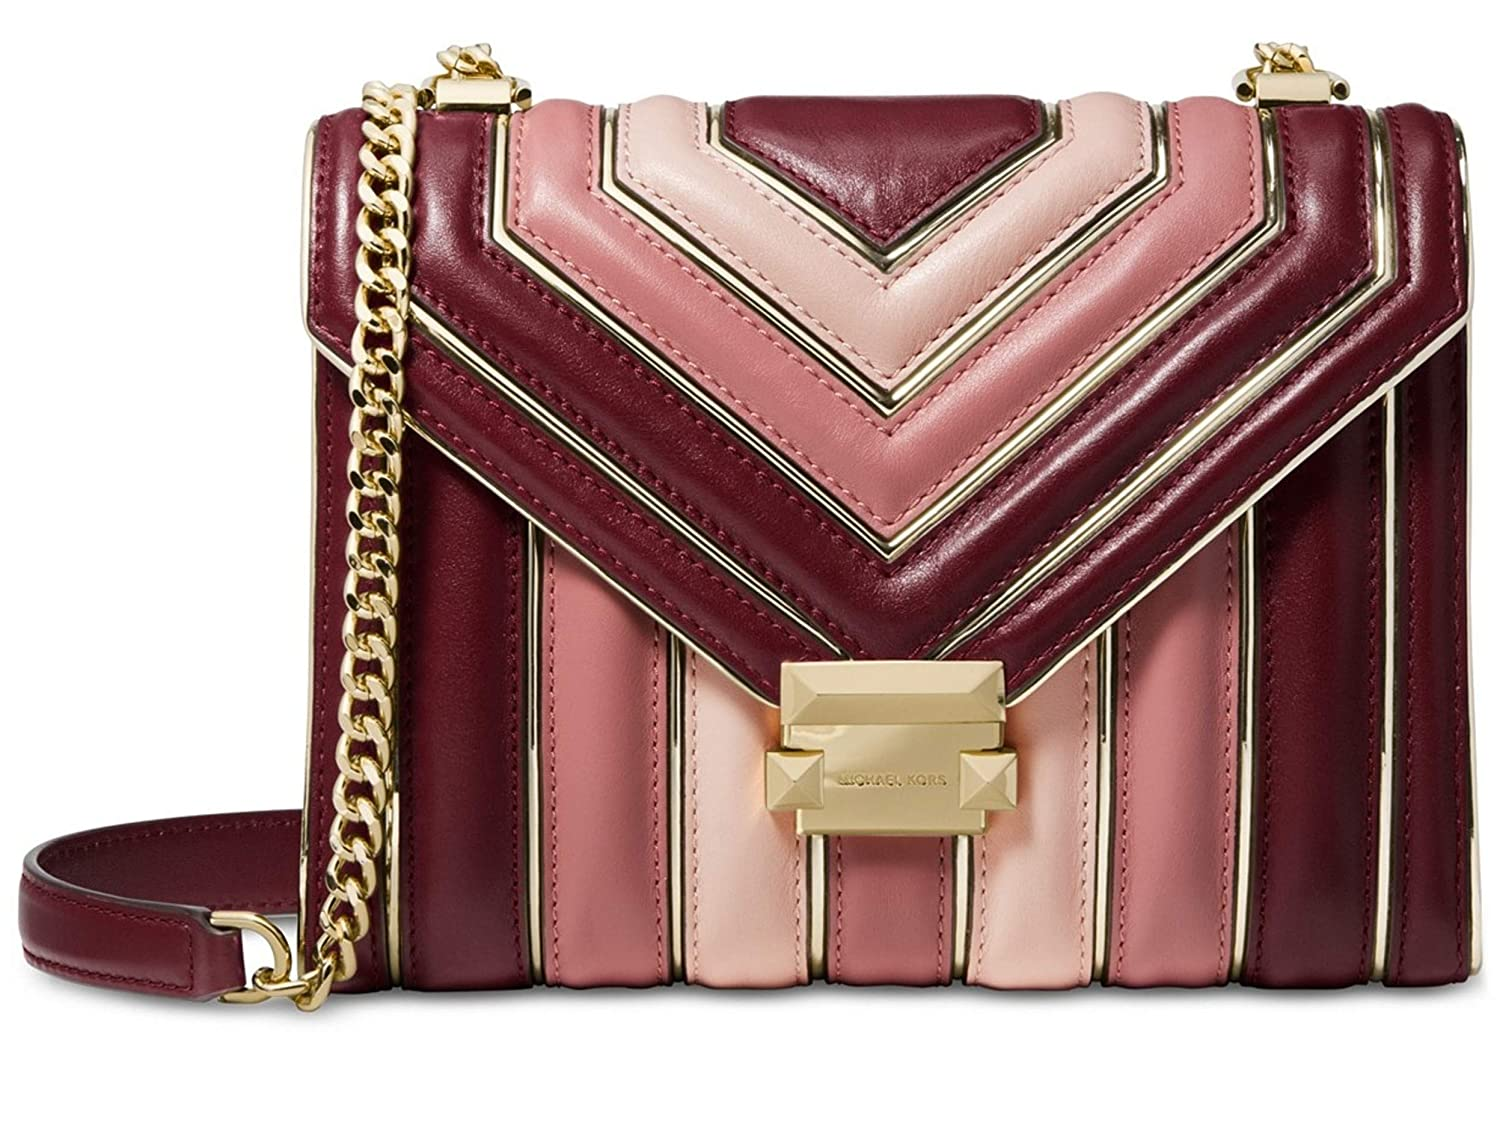 MICHAEL Michael Kors Whitney Large Quilted Tri-Color Polished Leather  Shoulder Bag, Oxblood Pink Multi  Handbags  Amazon.com d81ee5f110